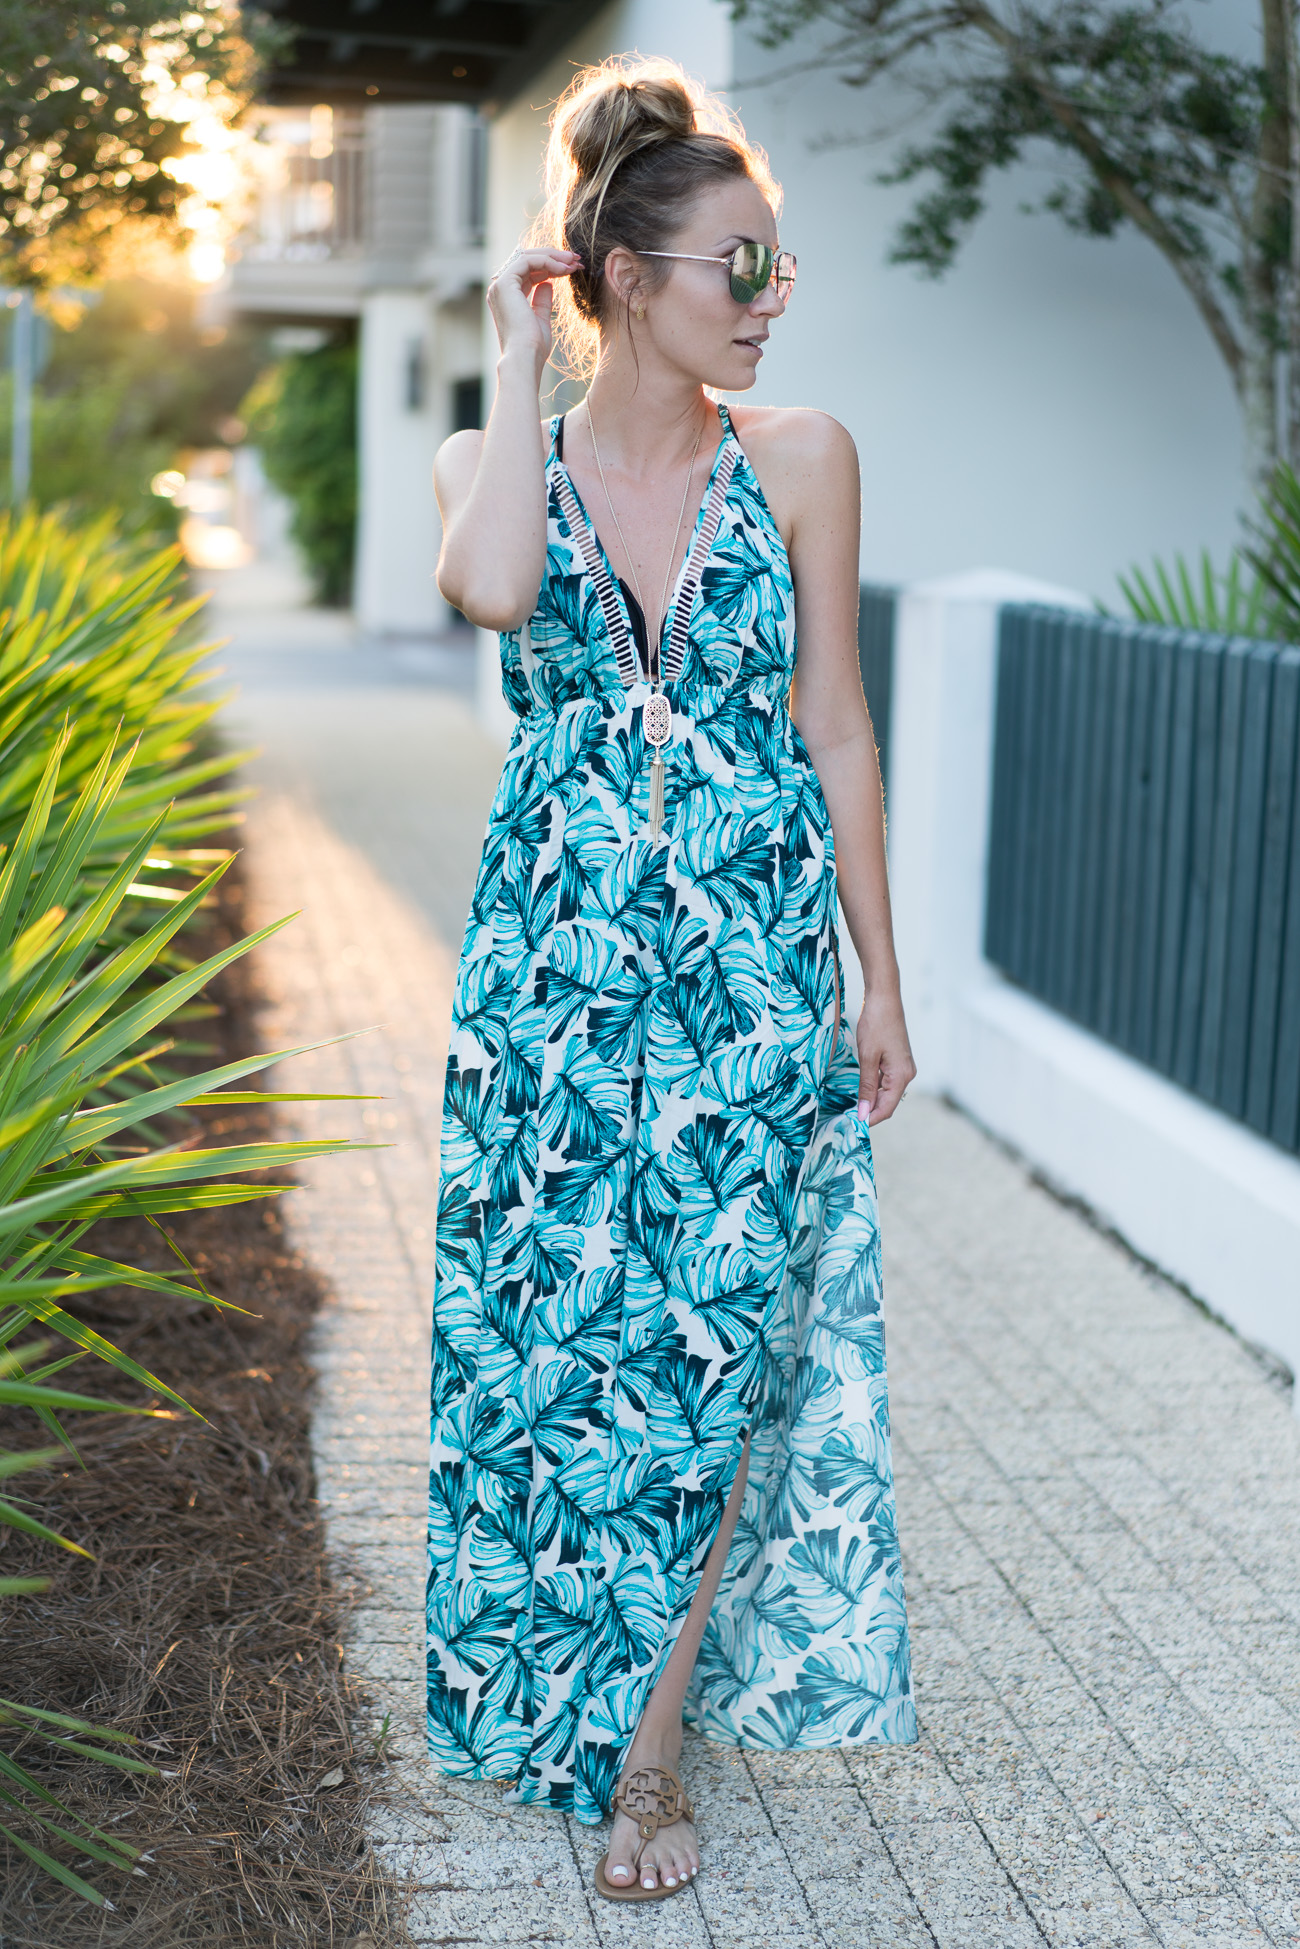 ASOS palm leaf print maxi dress swimsuit cover-up angela lanter hello gorgeous